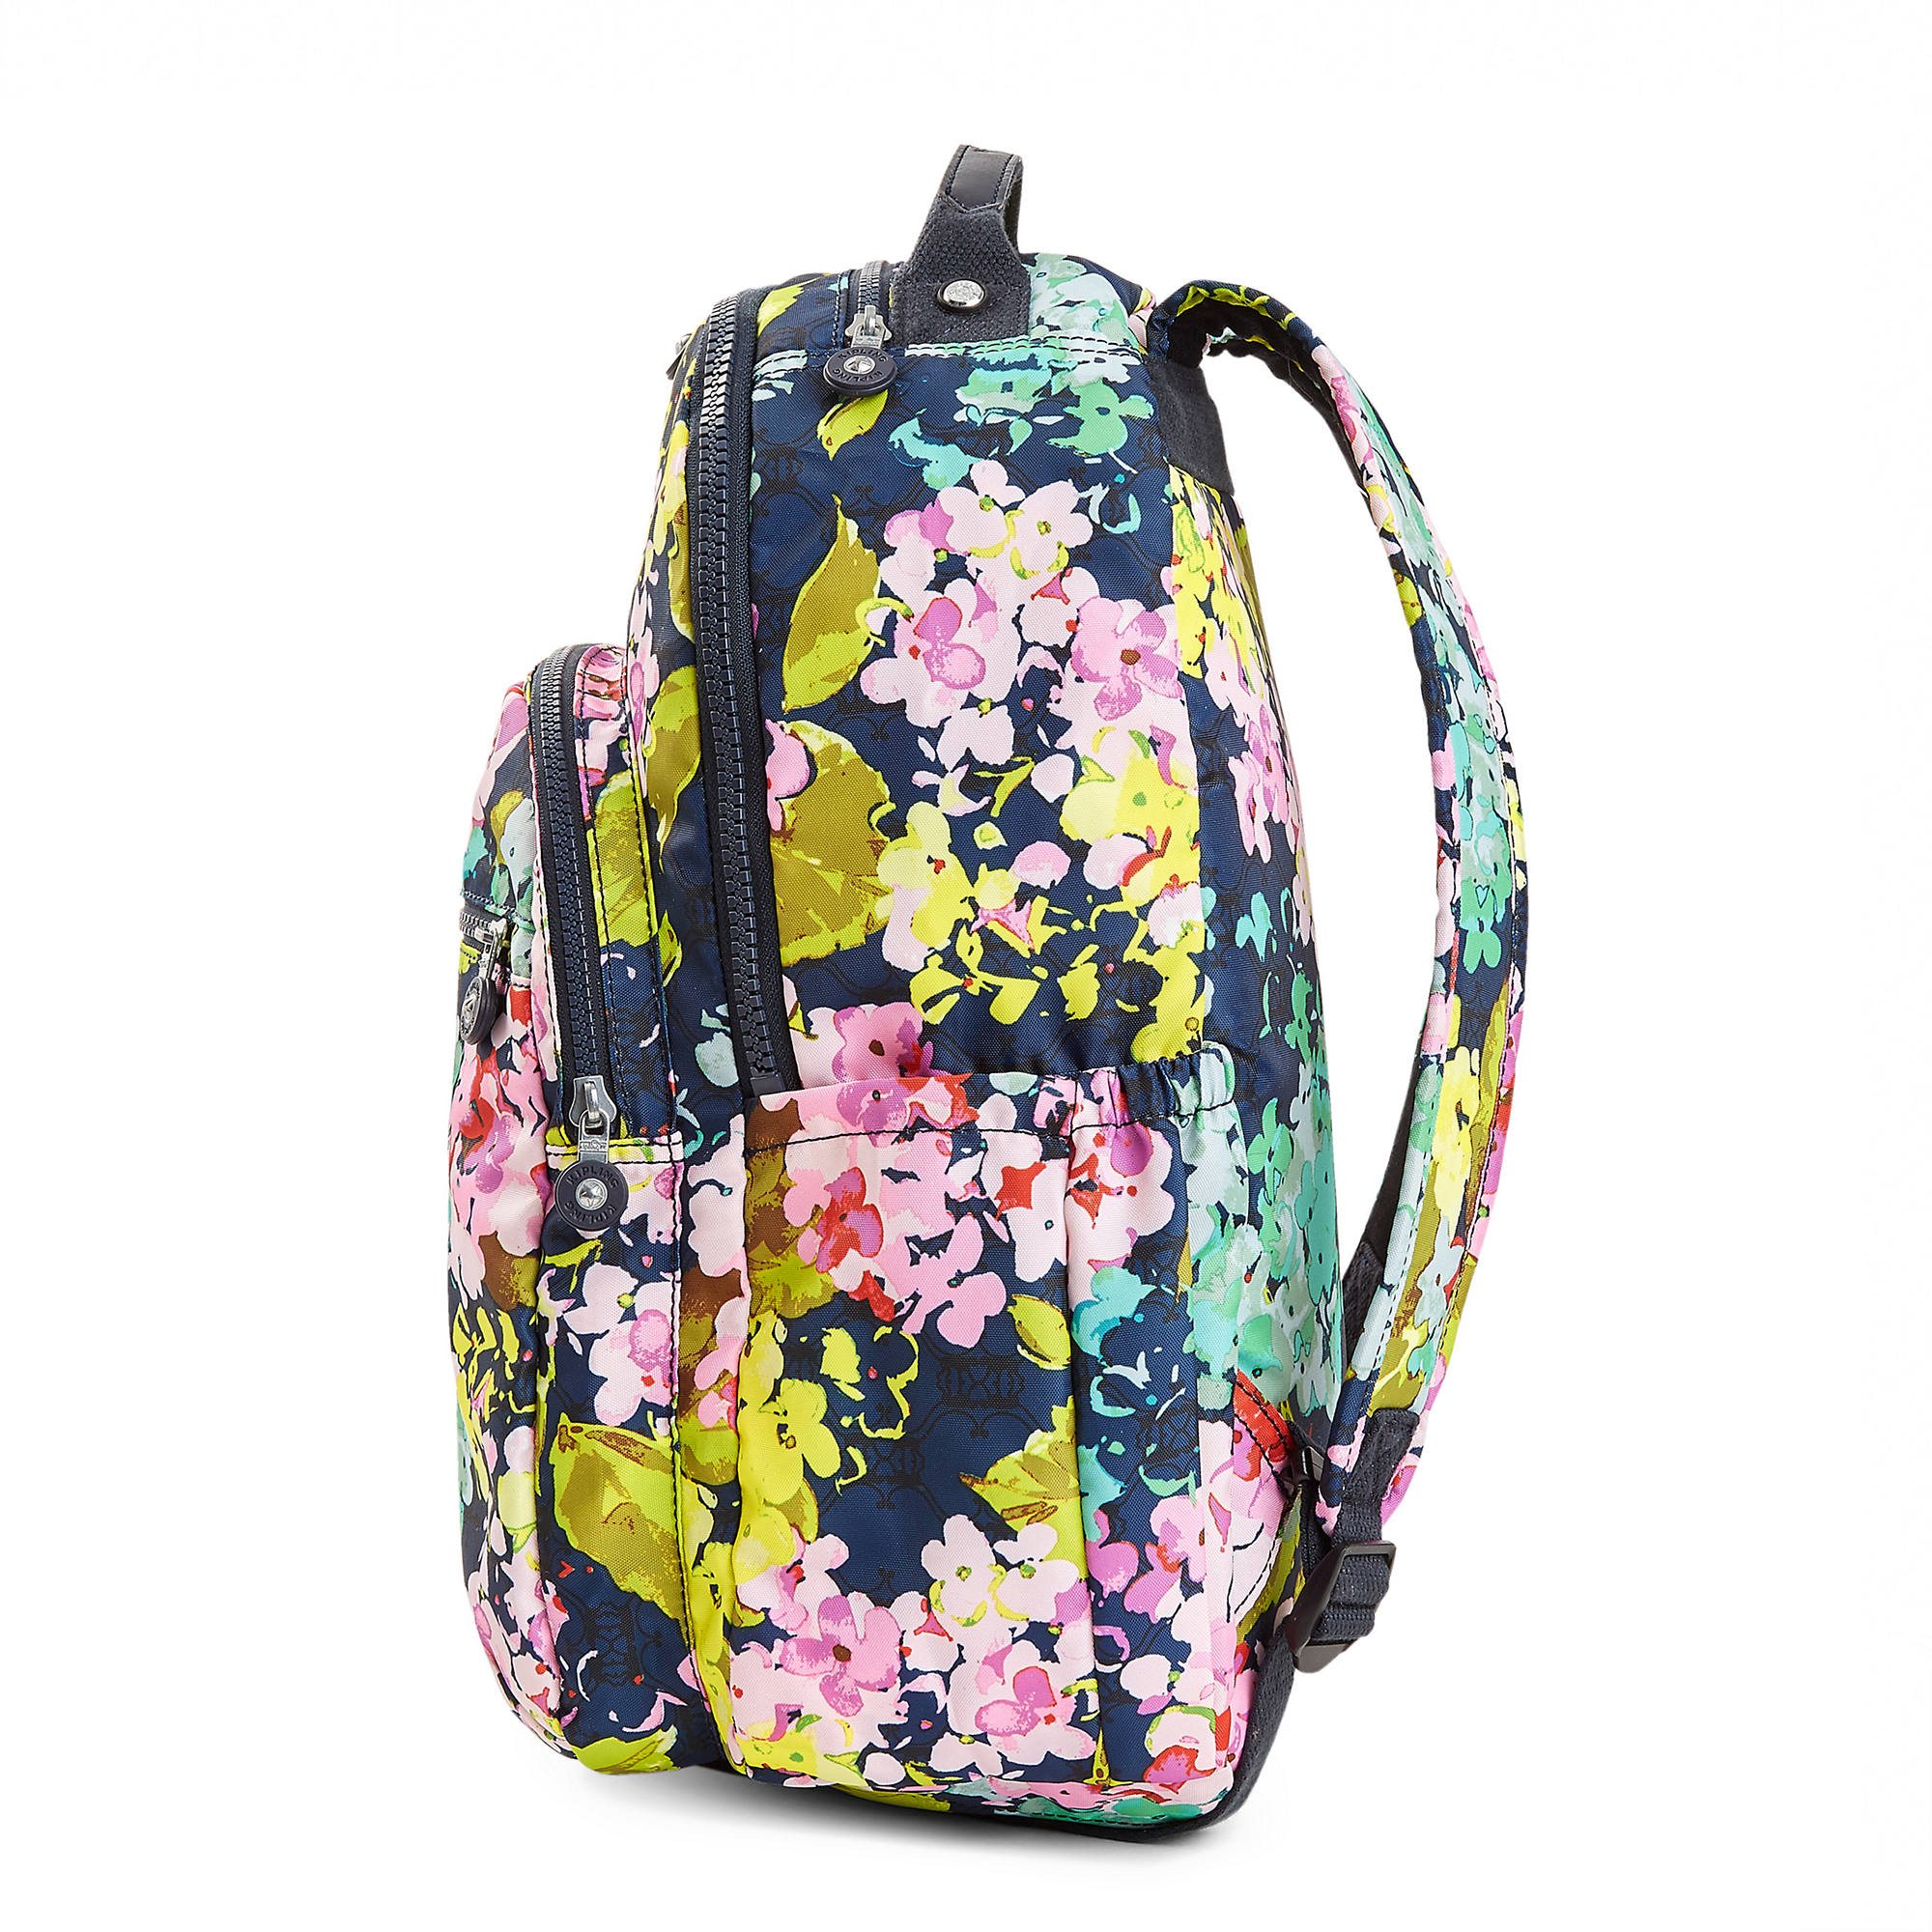 032bc7d859 Seoul Large Printed Laptop Backpack,Luscious Florals Blue,large